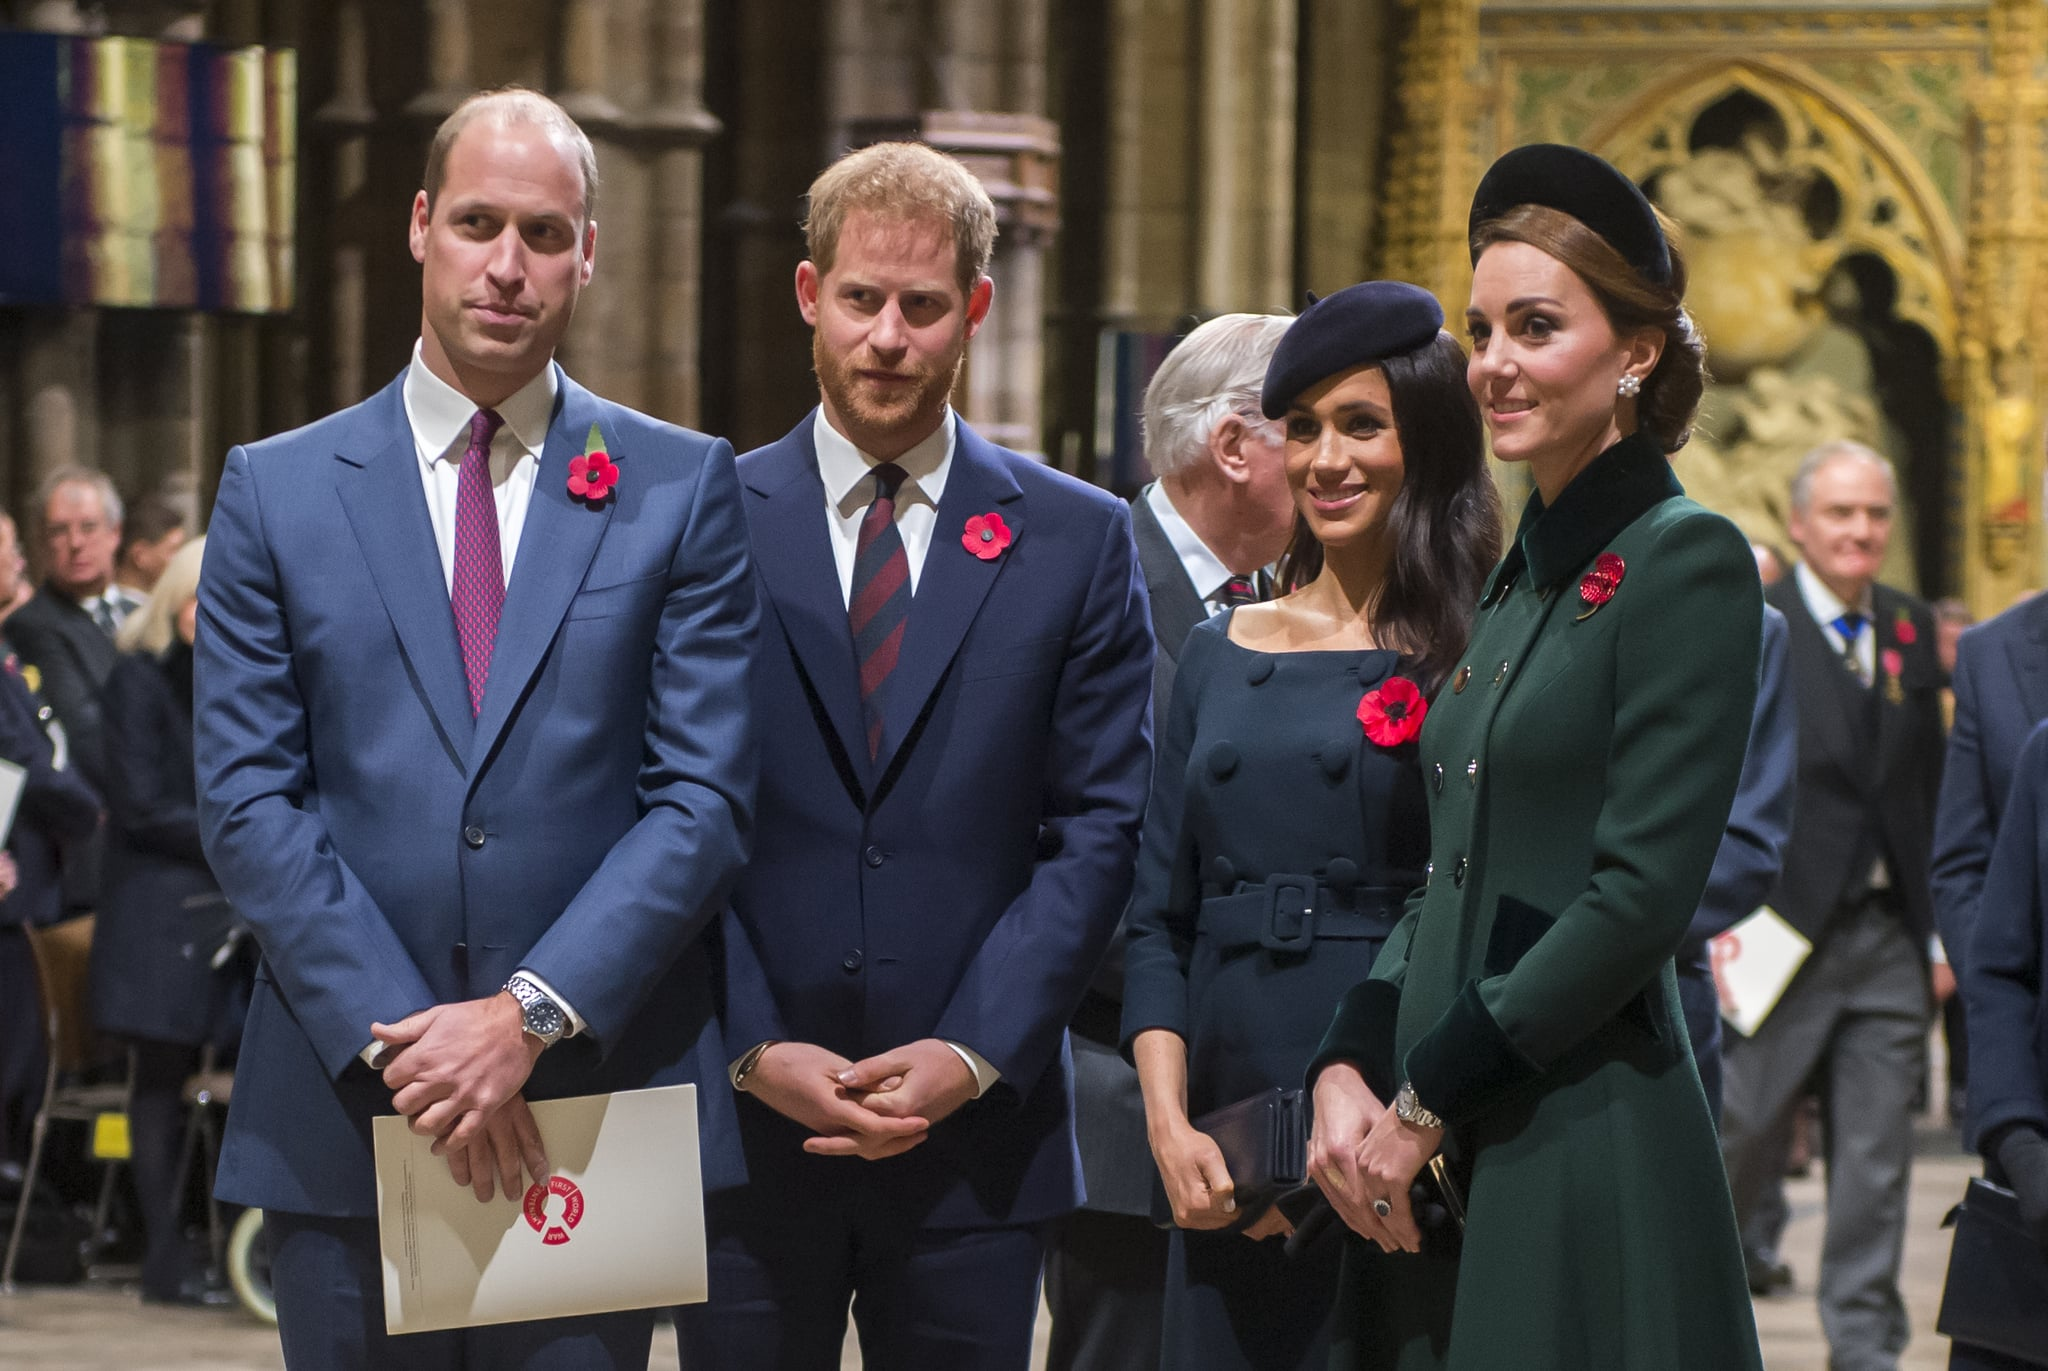 LONDON, ENGLAND - NOVEMBER 11: Prince William, Duke of Cambridge and Catherine, Duchess of Cambridge, Prince Harry, Duke of Sussex and Meghan, Duchess of Sussex attend a service marking the centenary of WW1 armistice at Westminster Abbey on November 11, 2018 in London, England. The armistice ending the First World War between the Allies and Germany was signed at Compiègne, France on eleventh hour of the eleventh day of the eleventh month - 11am on the 11th November 1918. This day is commemorated as Remembrance Day with special attention being paid for this year?s centenary.  (Photo by Paul Grover- WPA Pool/Getty Images)